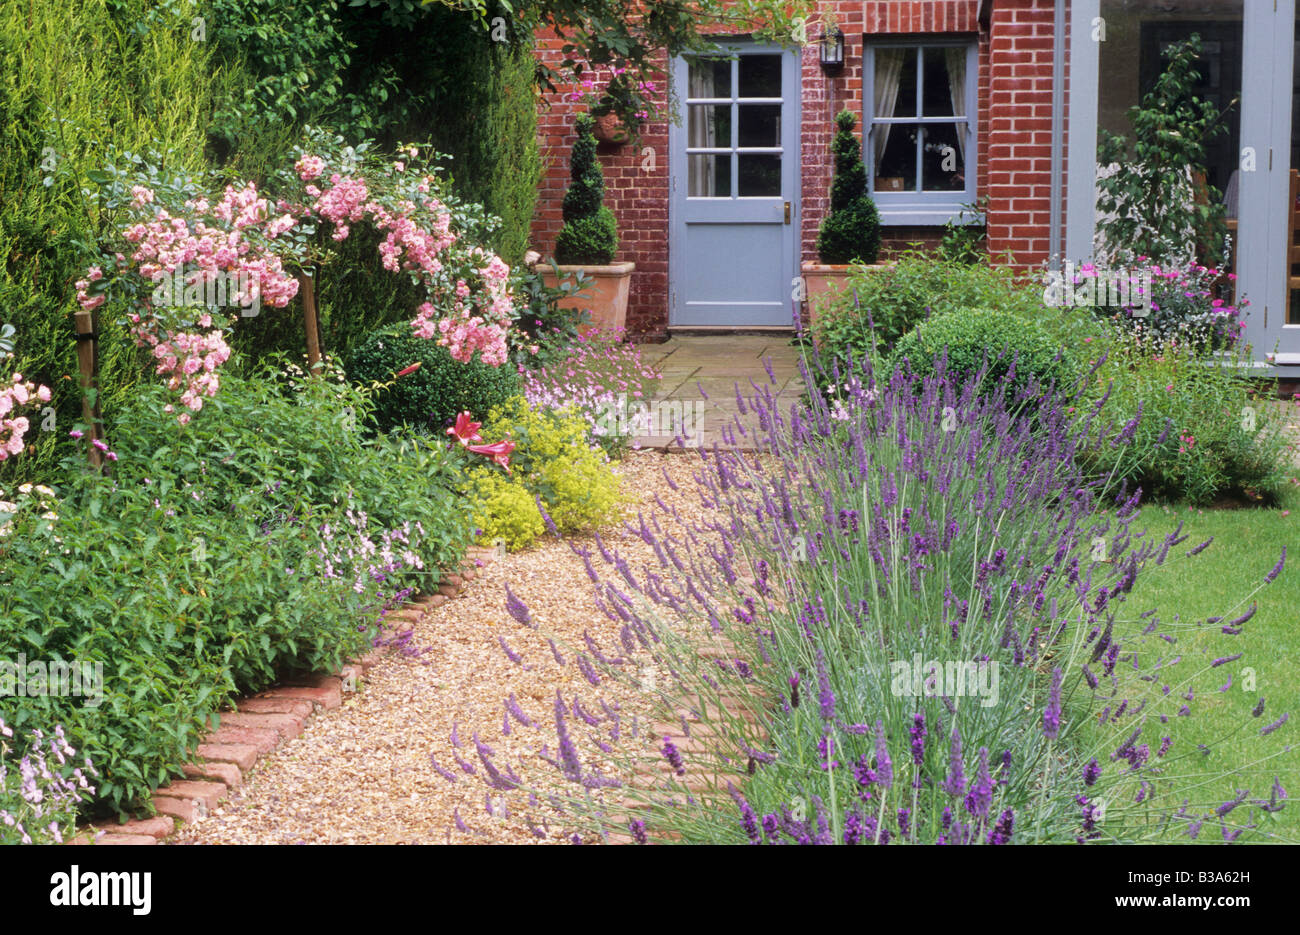 Brick And Gravel Path Borders With Lavender Rosa The Fairy House Blue Painted Back Door Small Garden Design Rose Lawn Pink